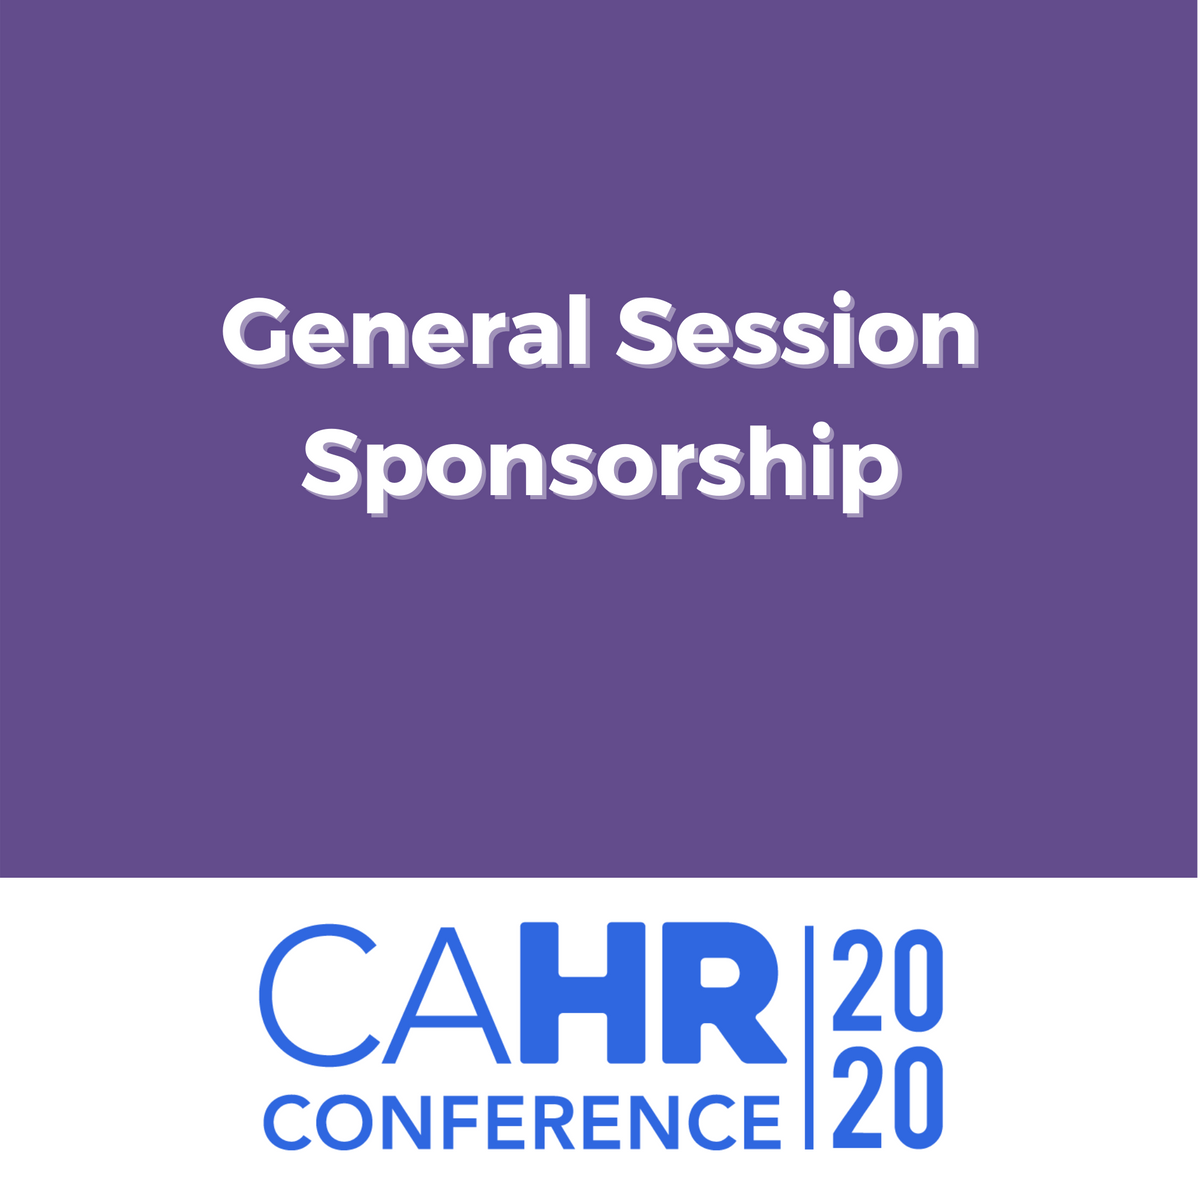 General Session Sponsorship